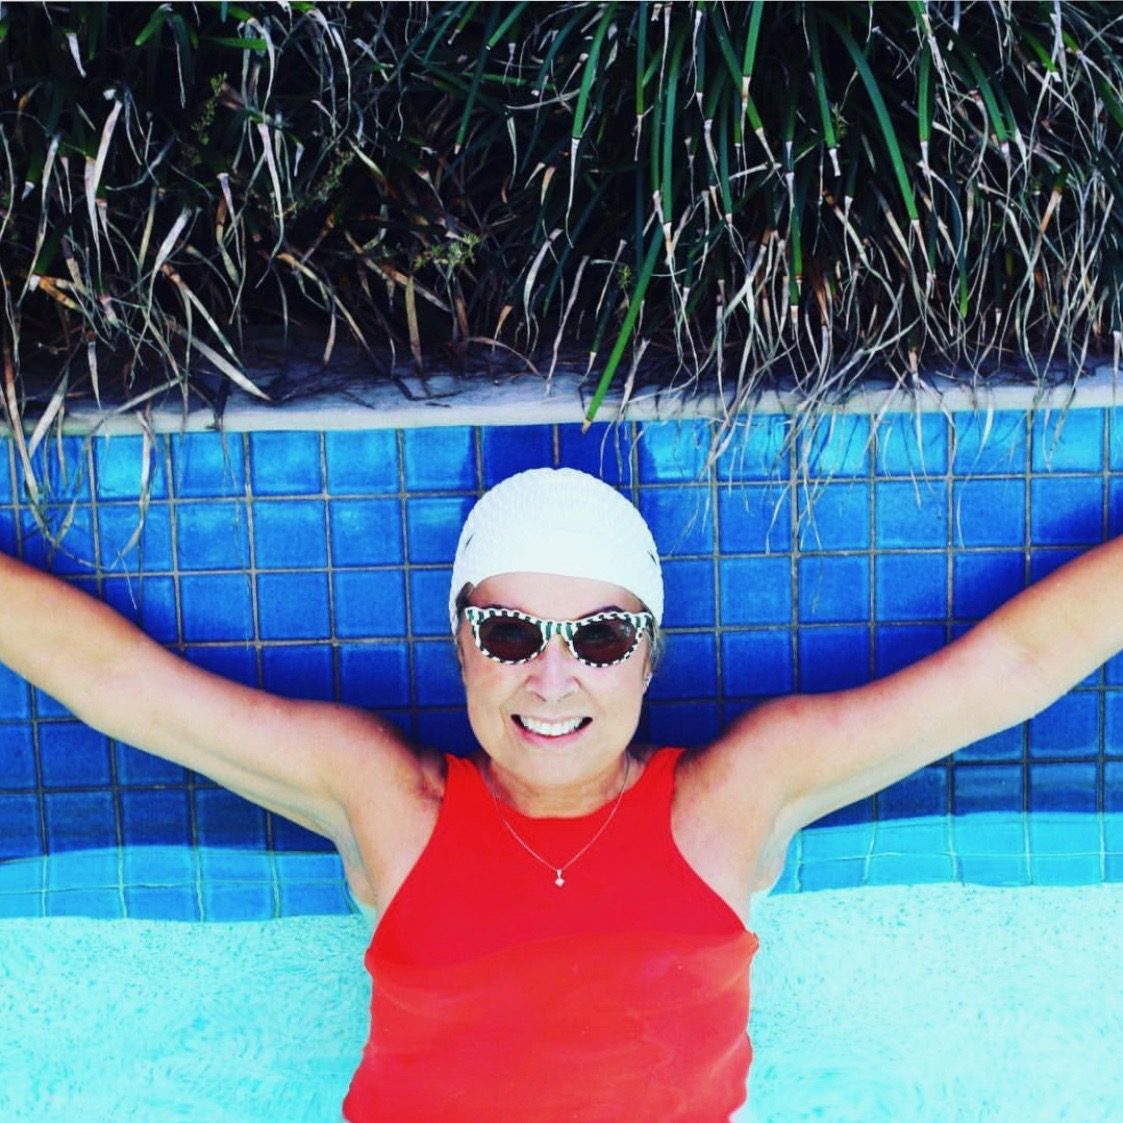 Swimming and posing in Byron Bay